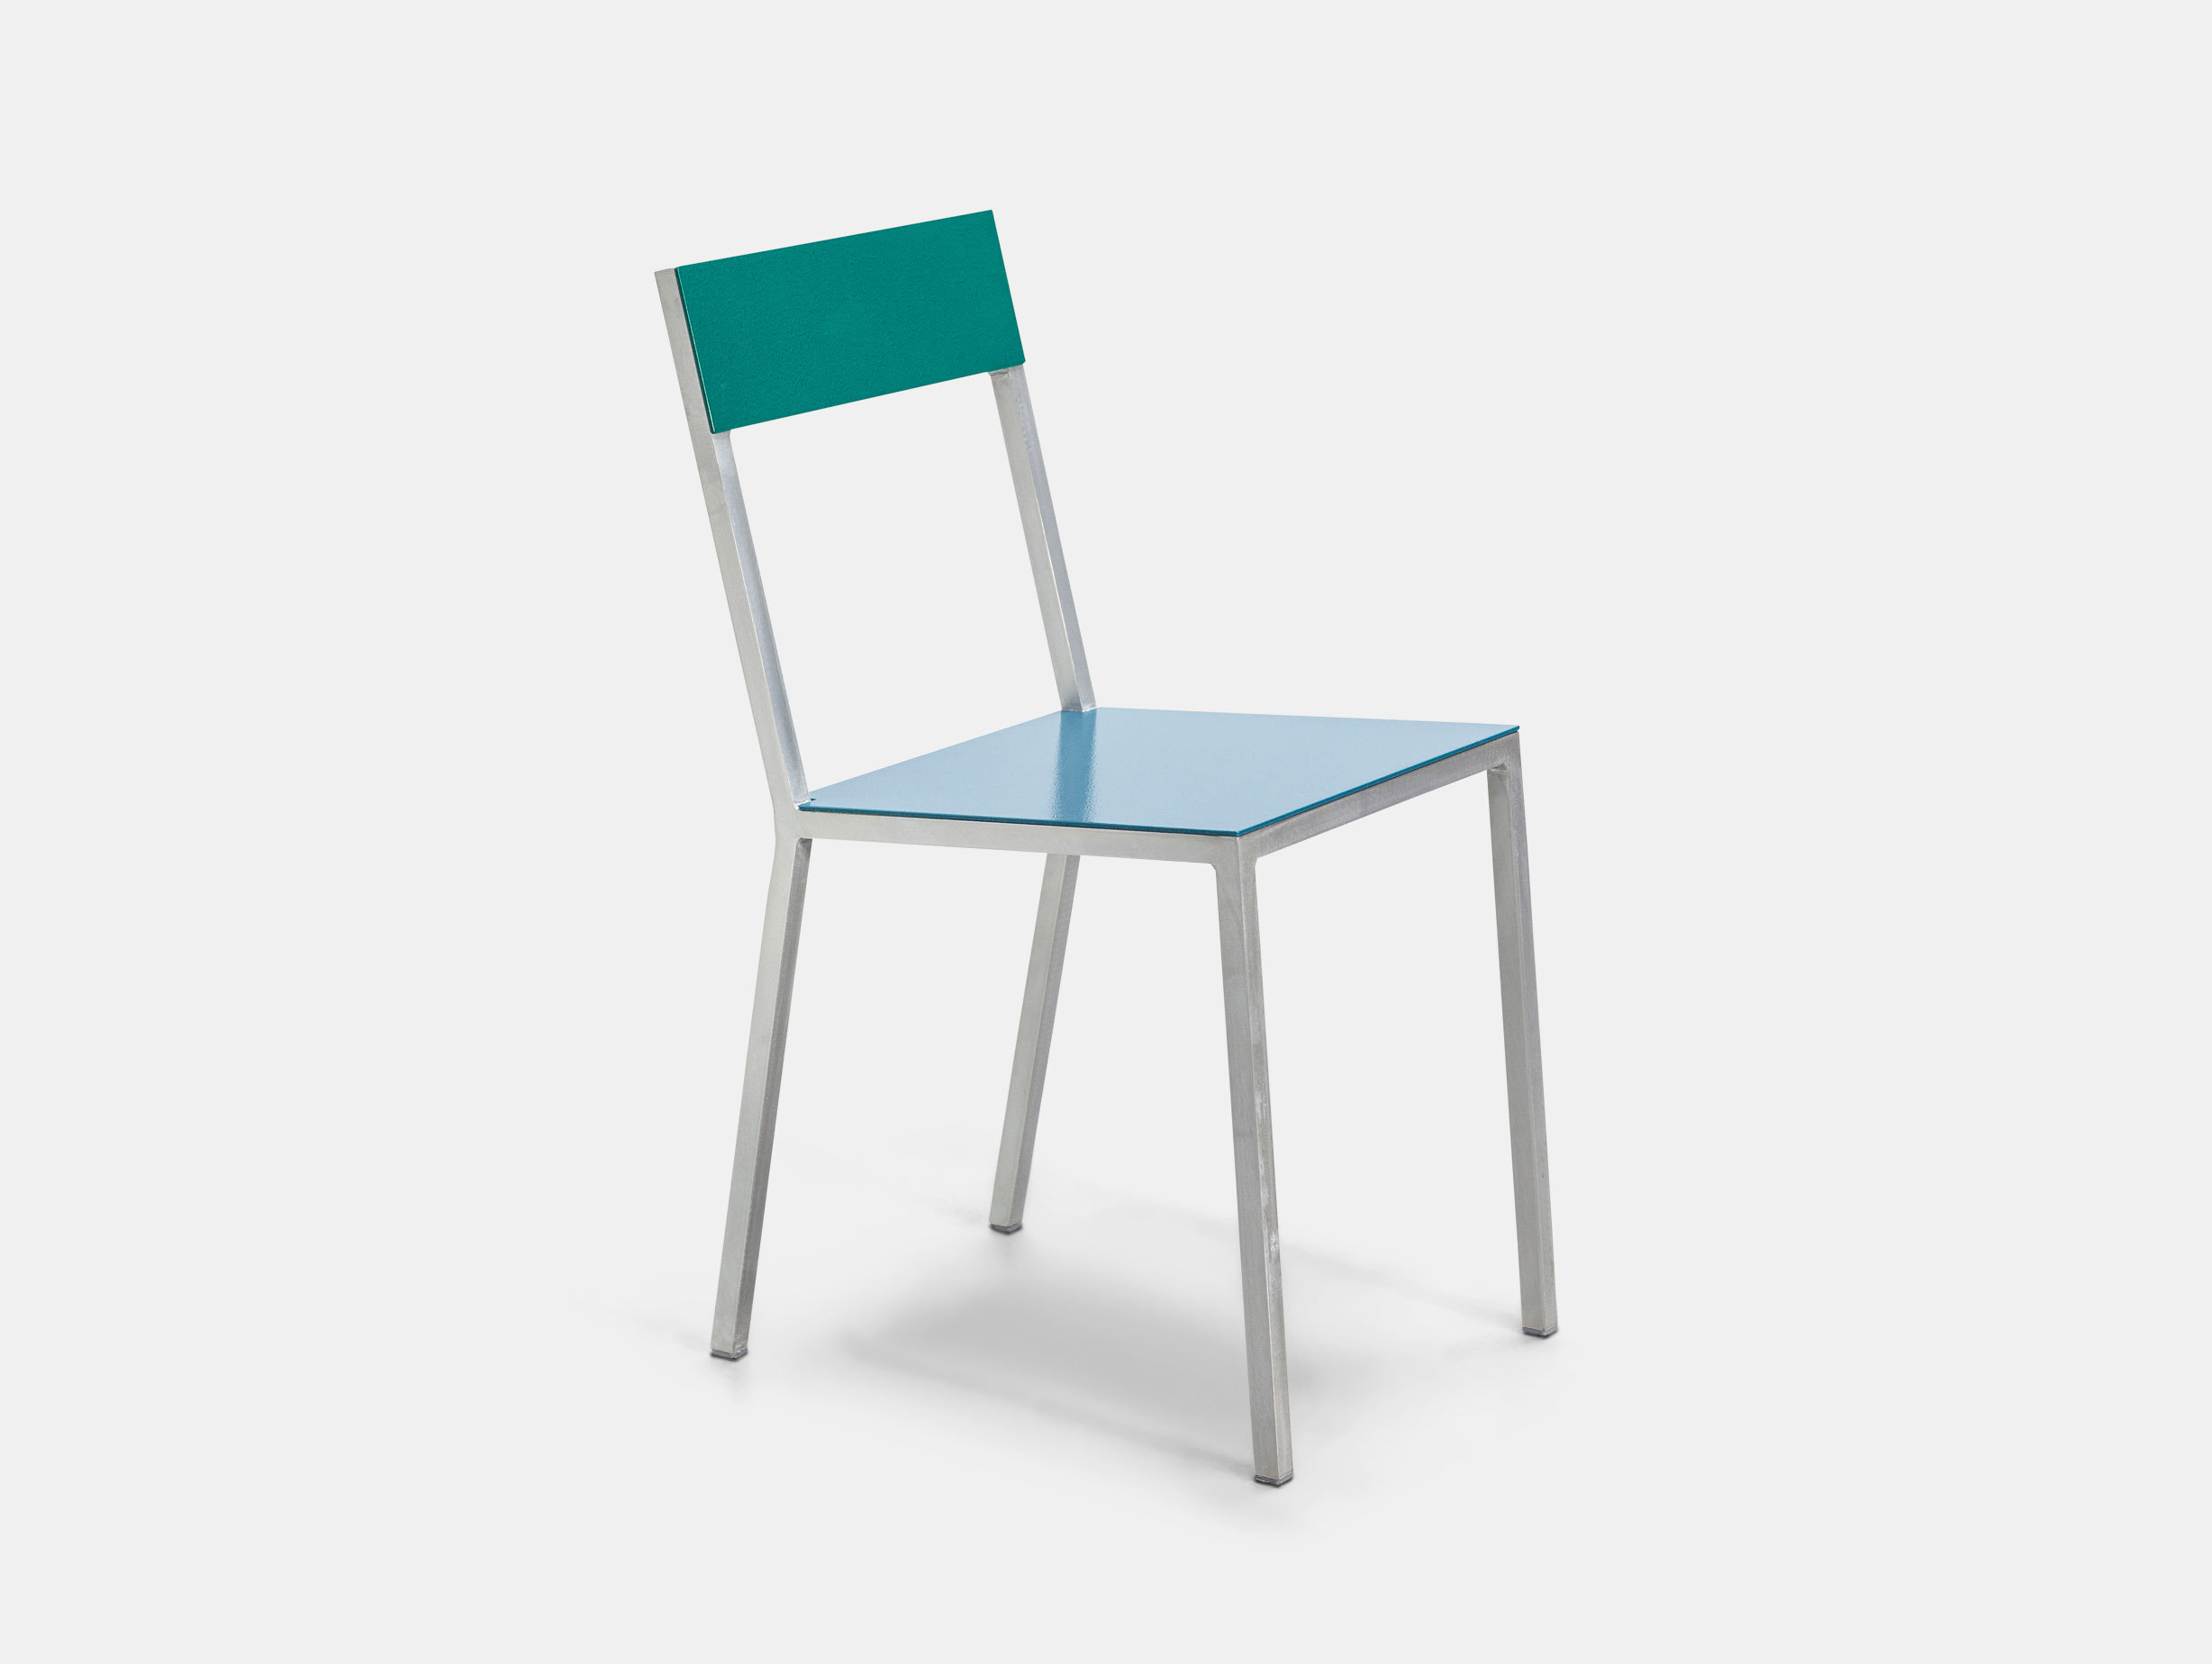 Alu Chair image 12